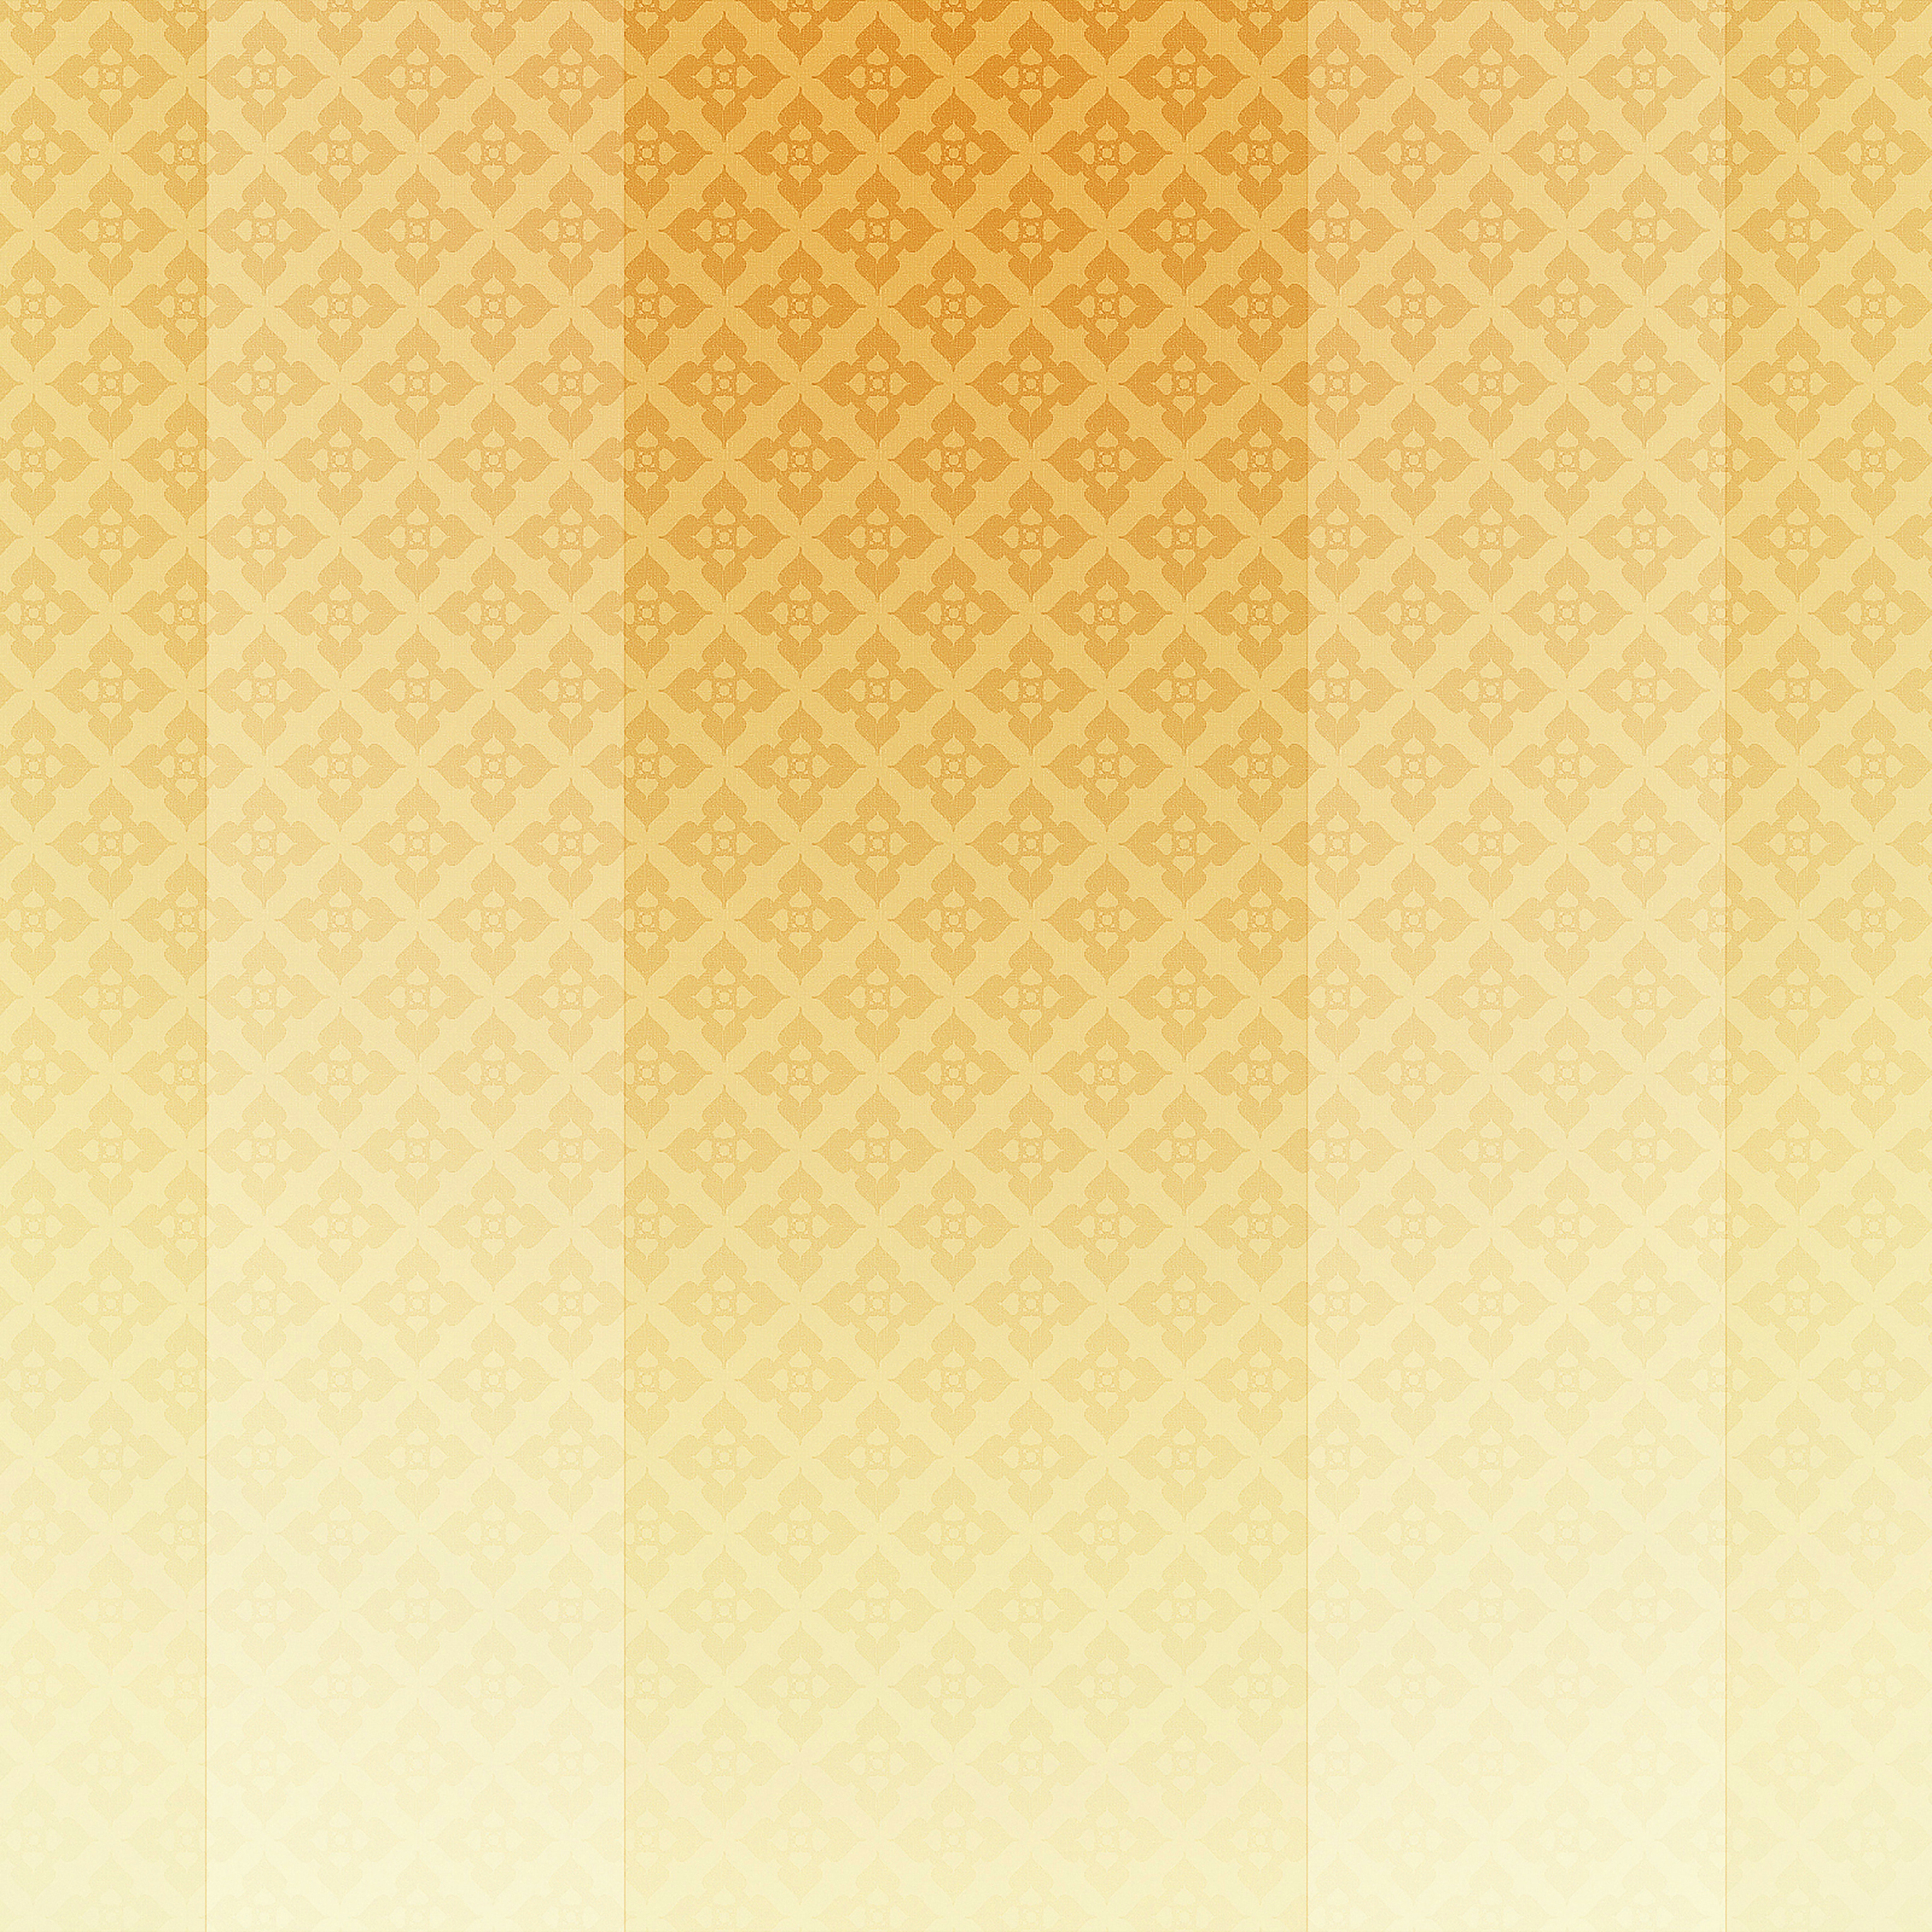 Gold-inspired Wallpapers For IPad And IPhone XS Max